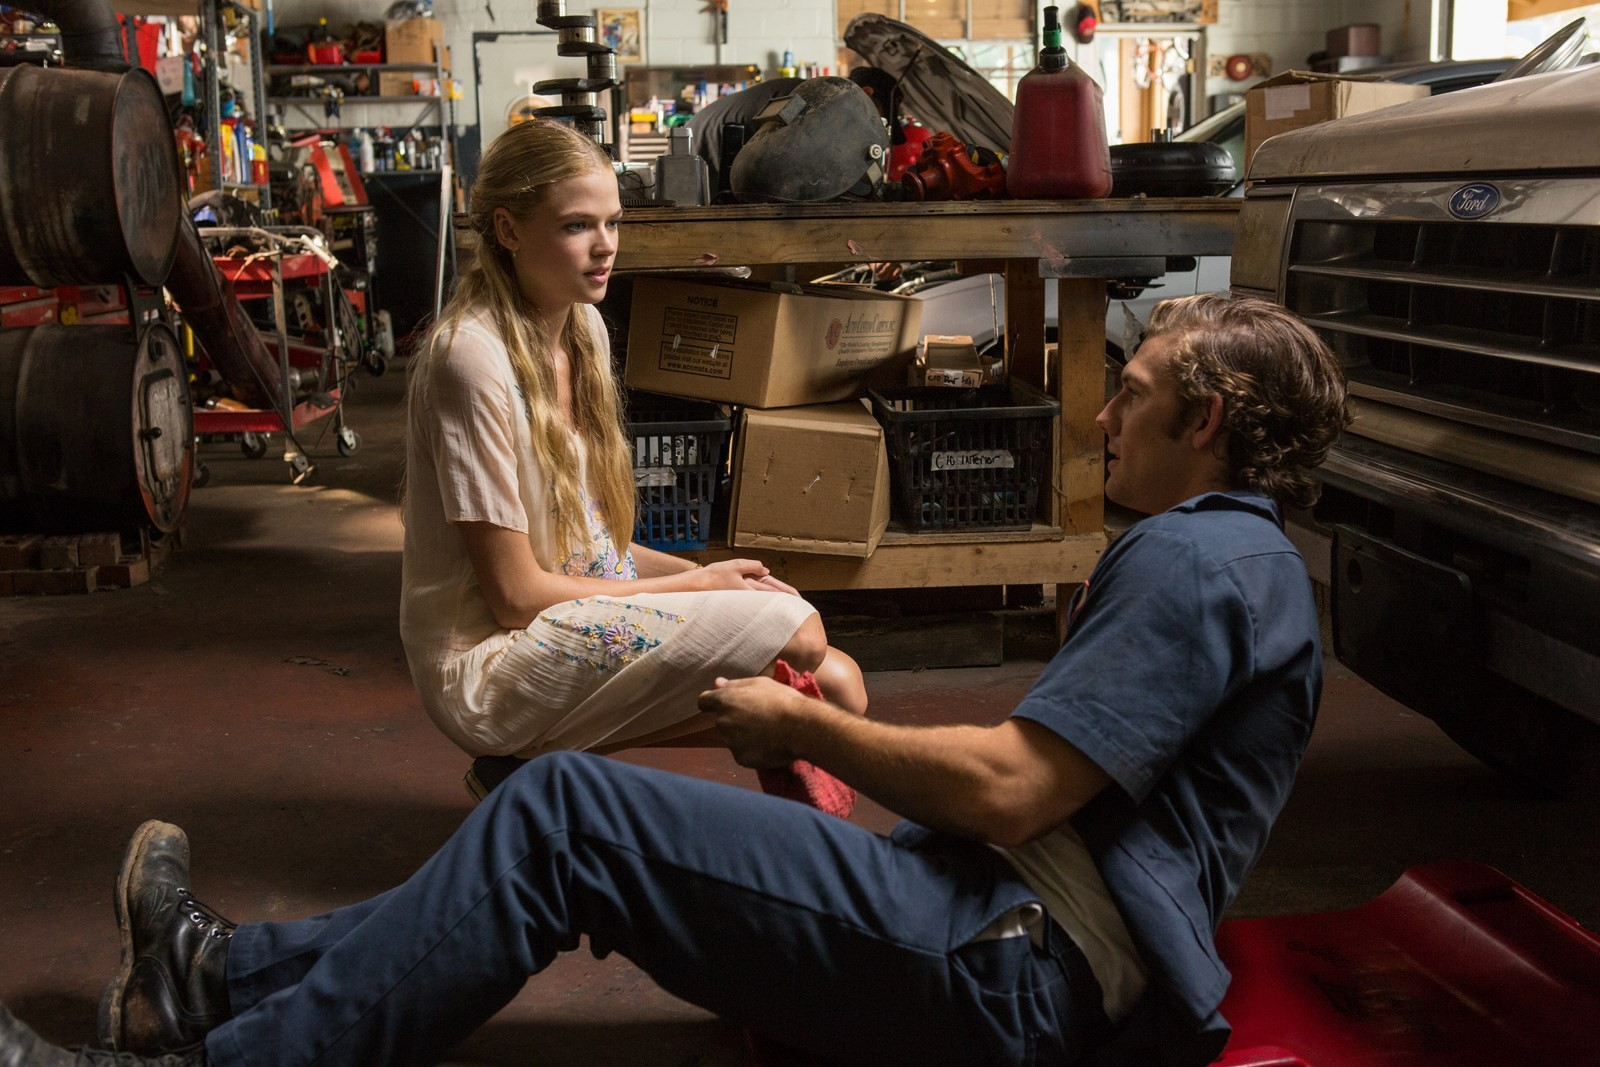 Gabriella Wilde stars as Jade Butterfield and Alex Pettyfer stars as David Elliot in Universal Pictures' Endless Love (2014)